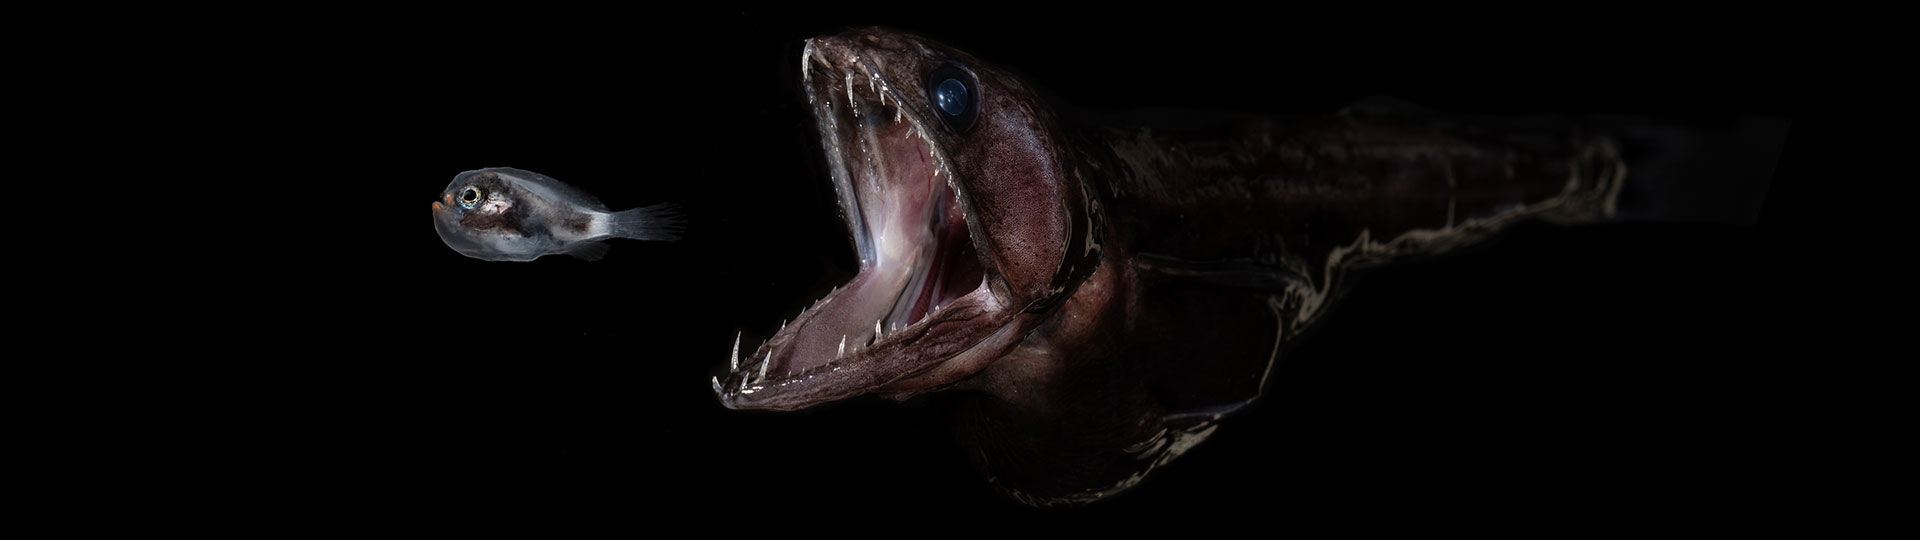 Black swallower and larval anglerfish